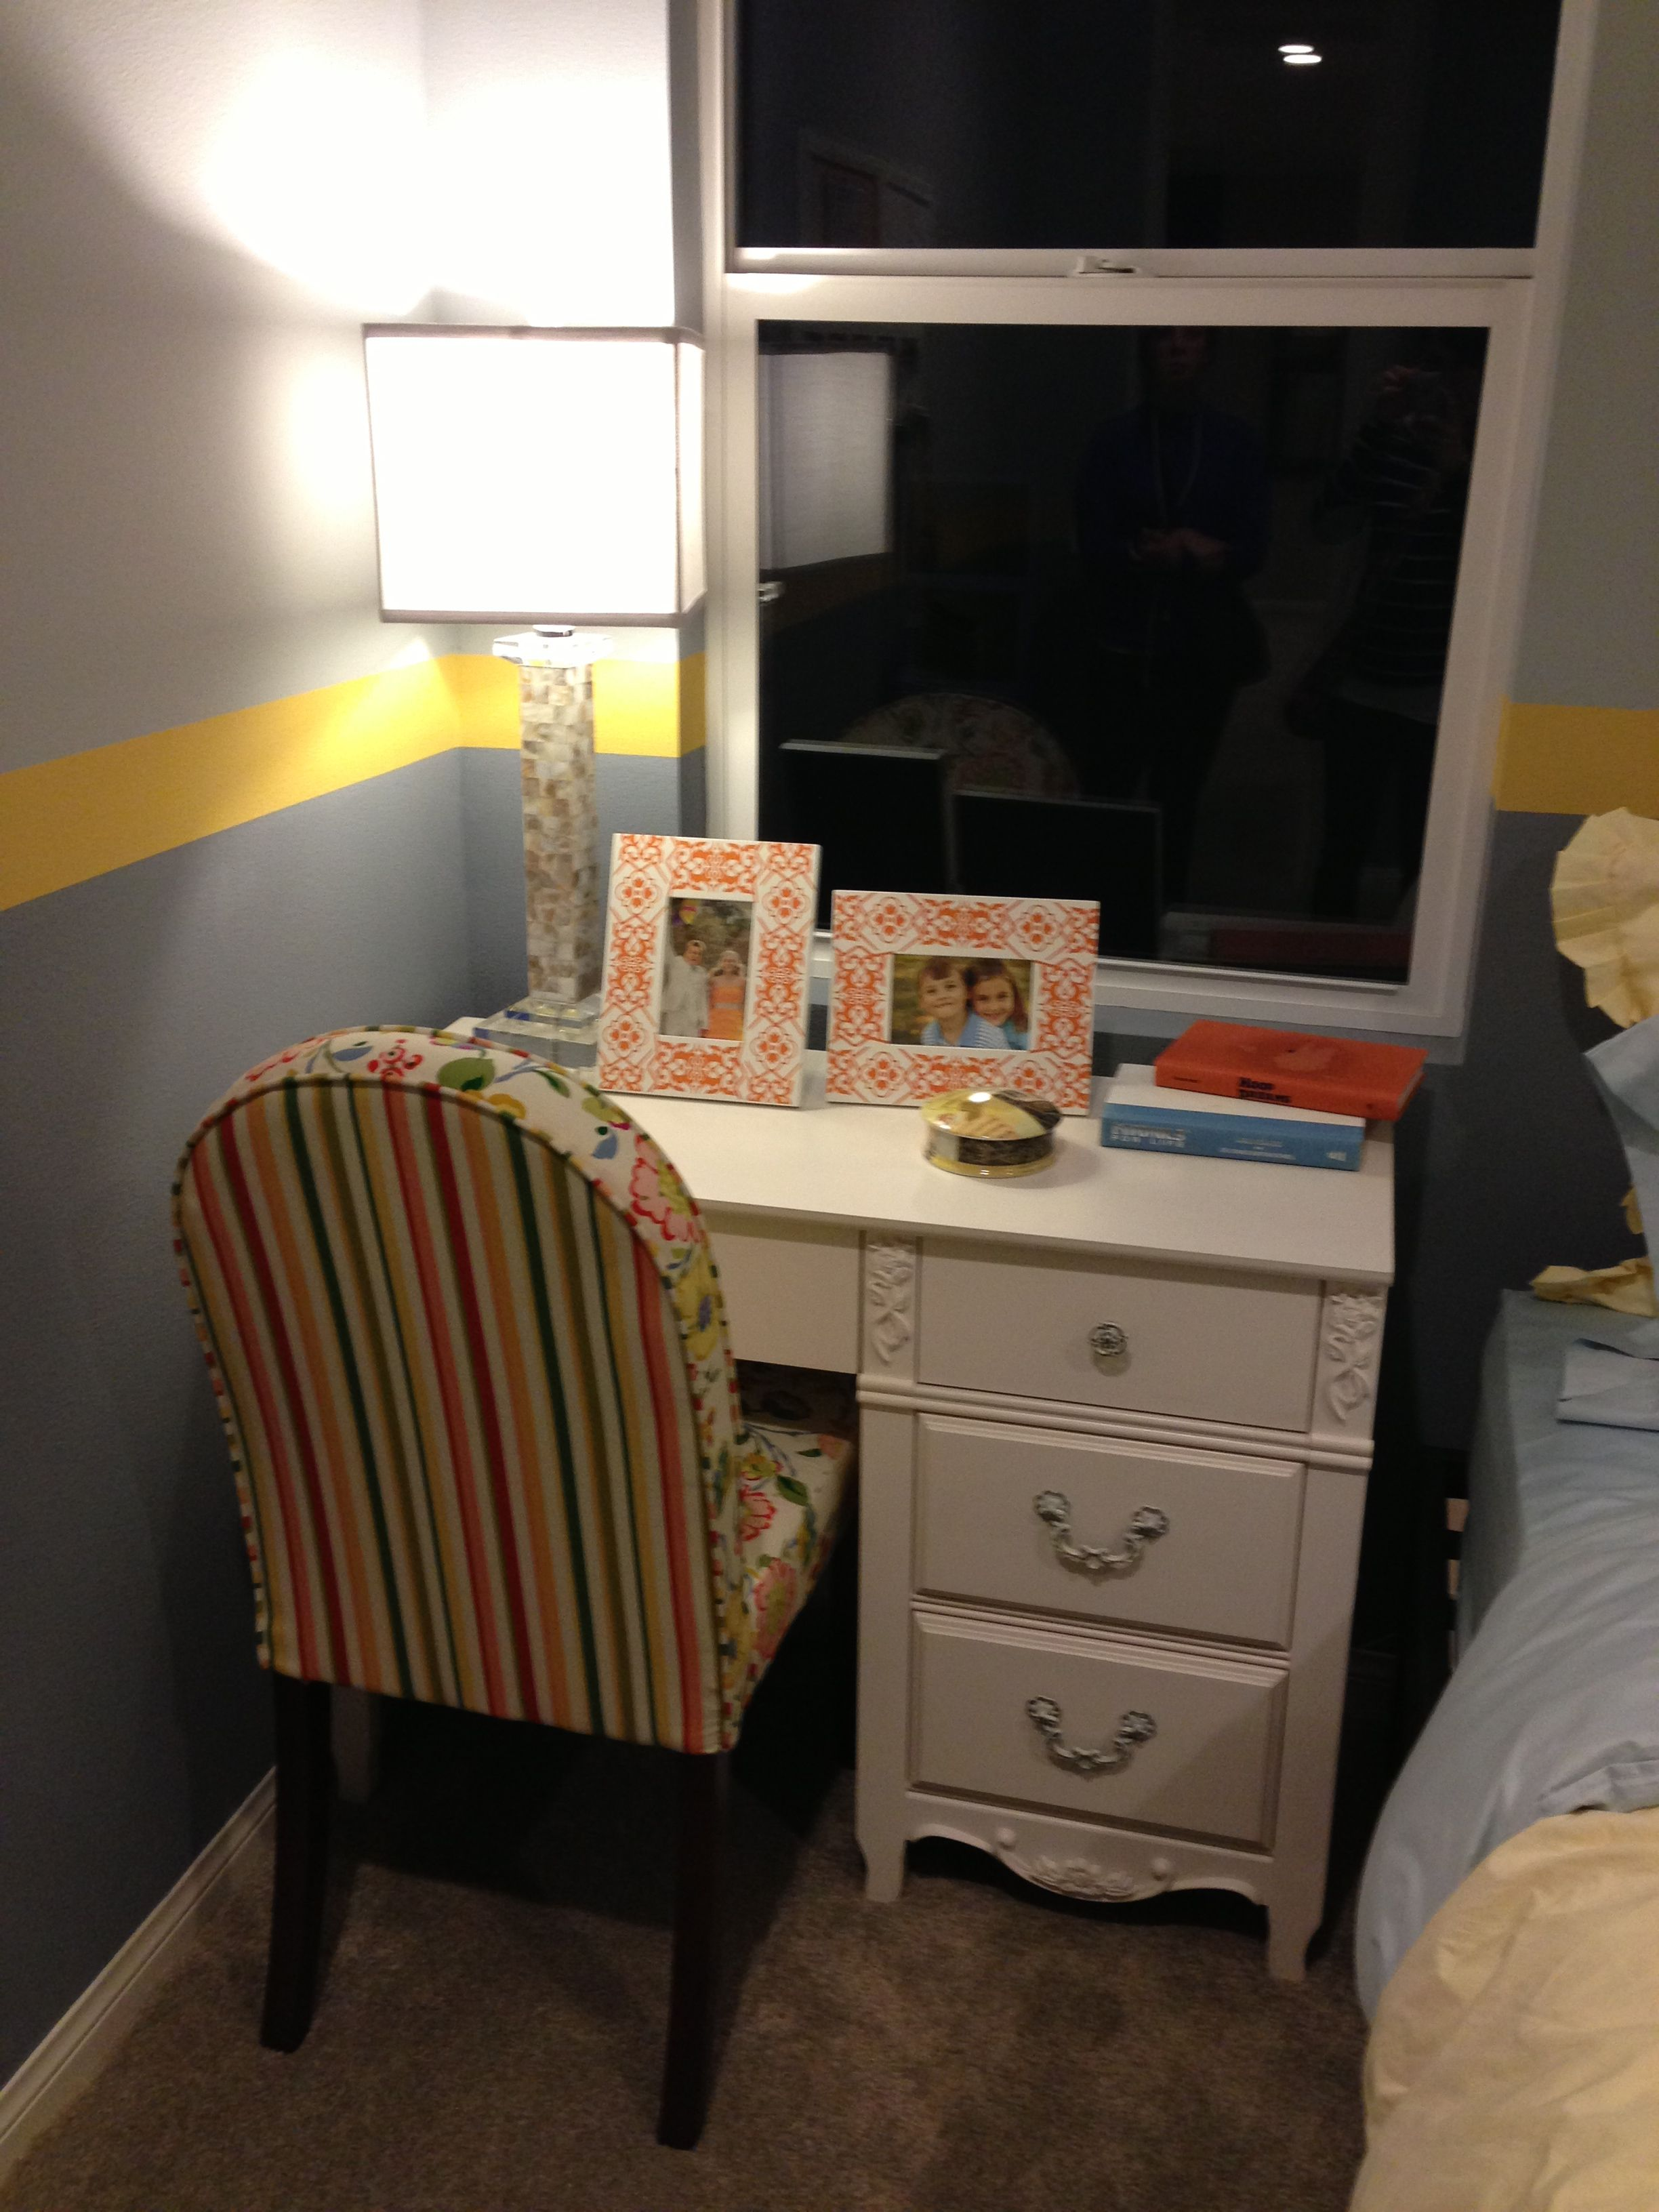 blue and yellow room with orange accents, super cute desk area